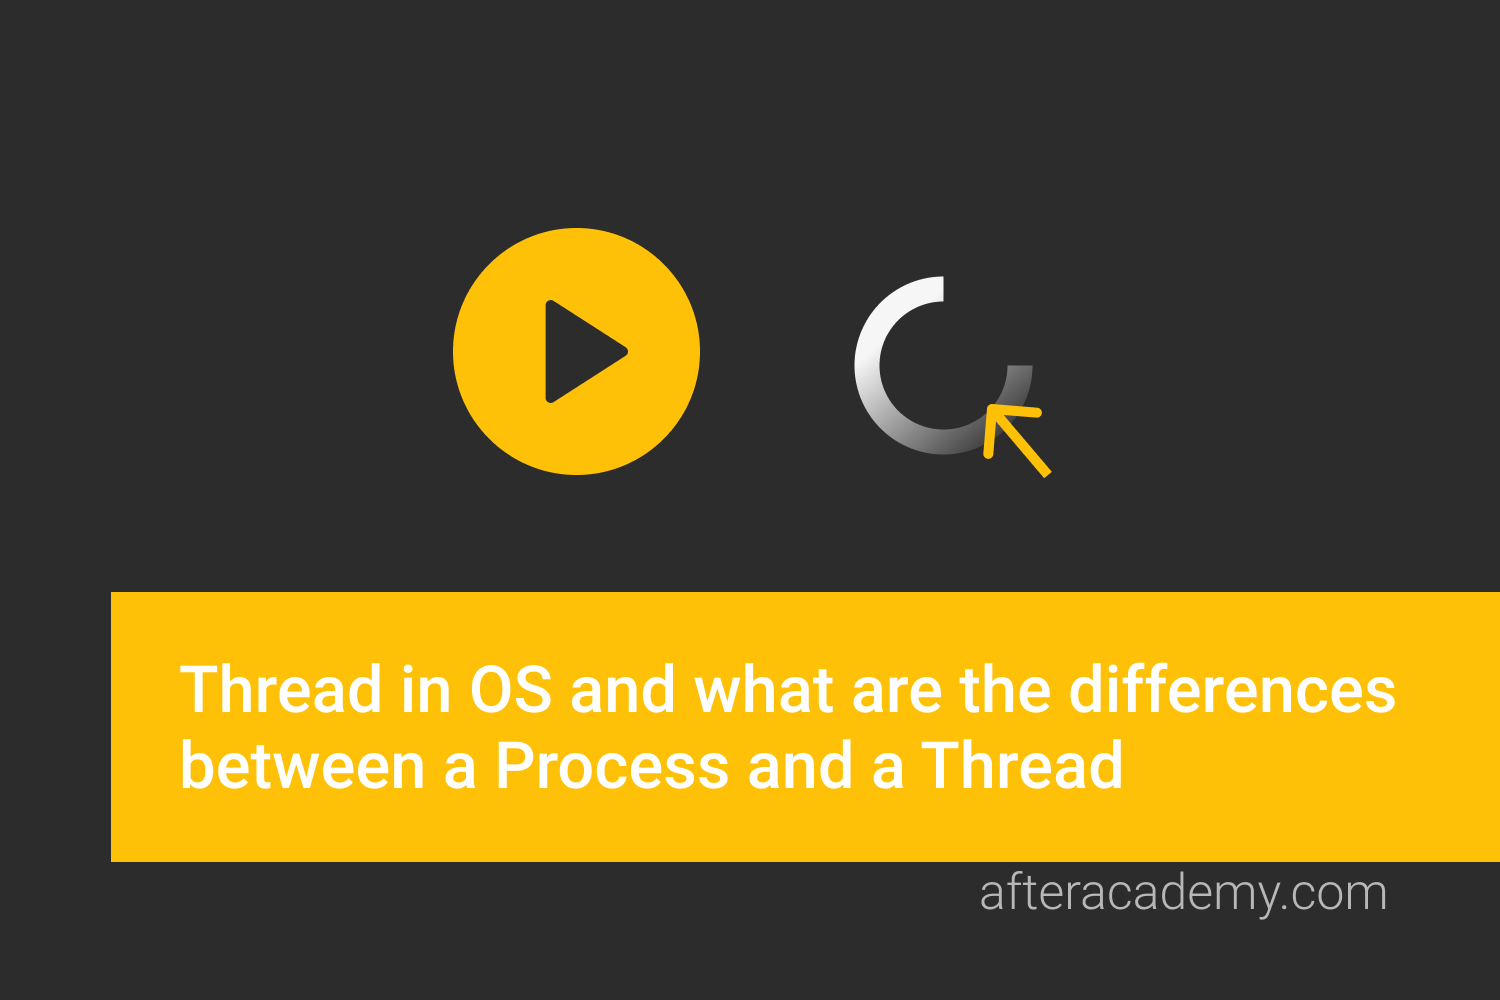 What is a Thread in OS and what are the differences between a Process and a Thread?